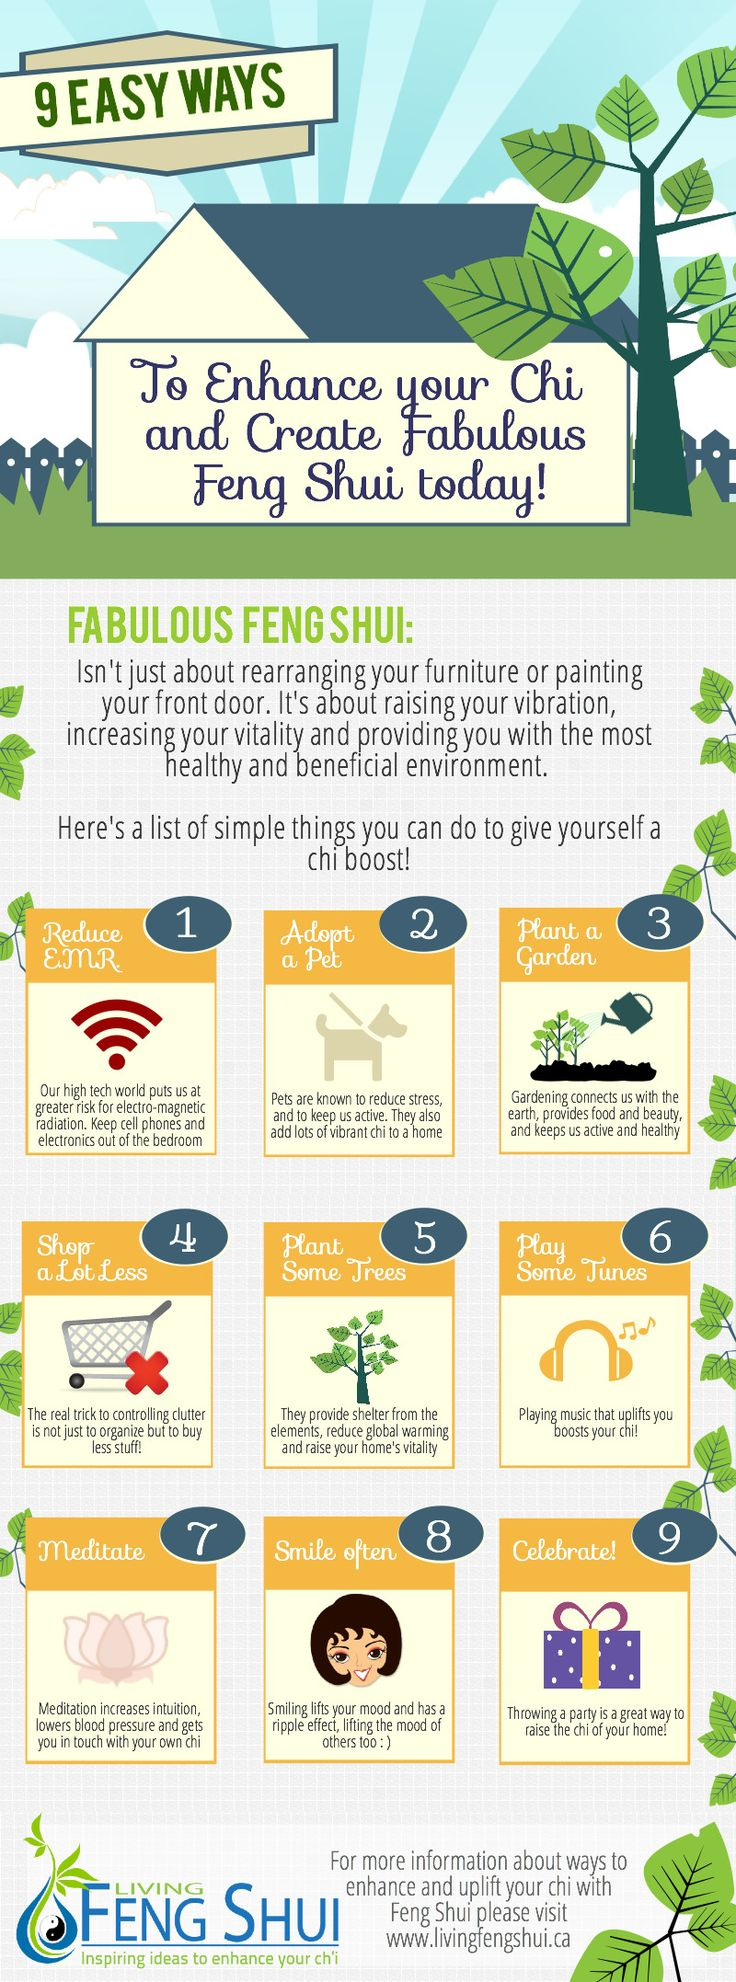 9 Easy Ways to Enhance your Chi and Create Fabulous Feng Shui - A Fun Feng Shui Infographic - #LivingFengShui